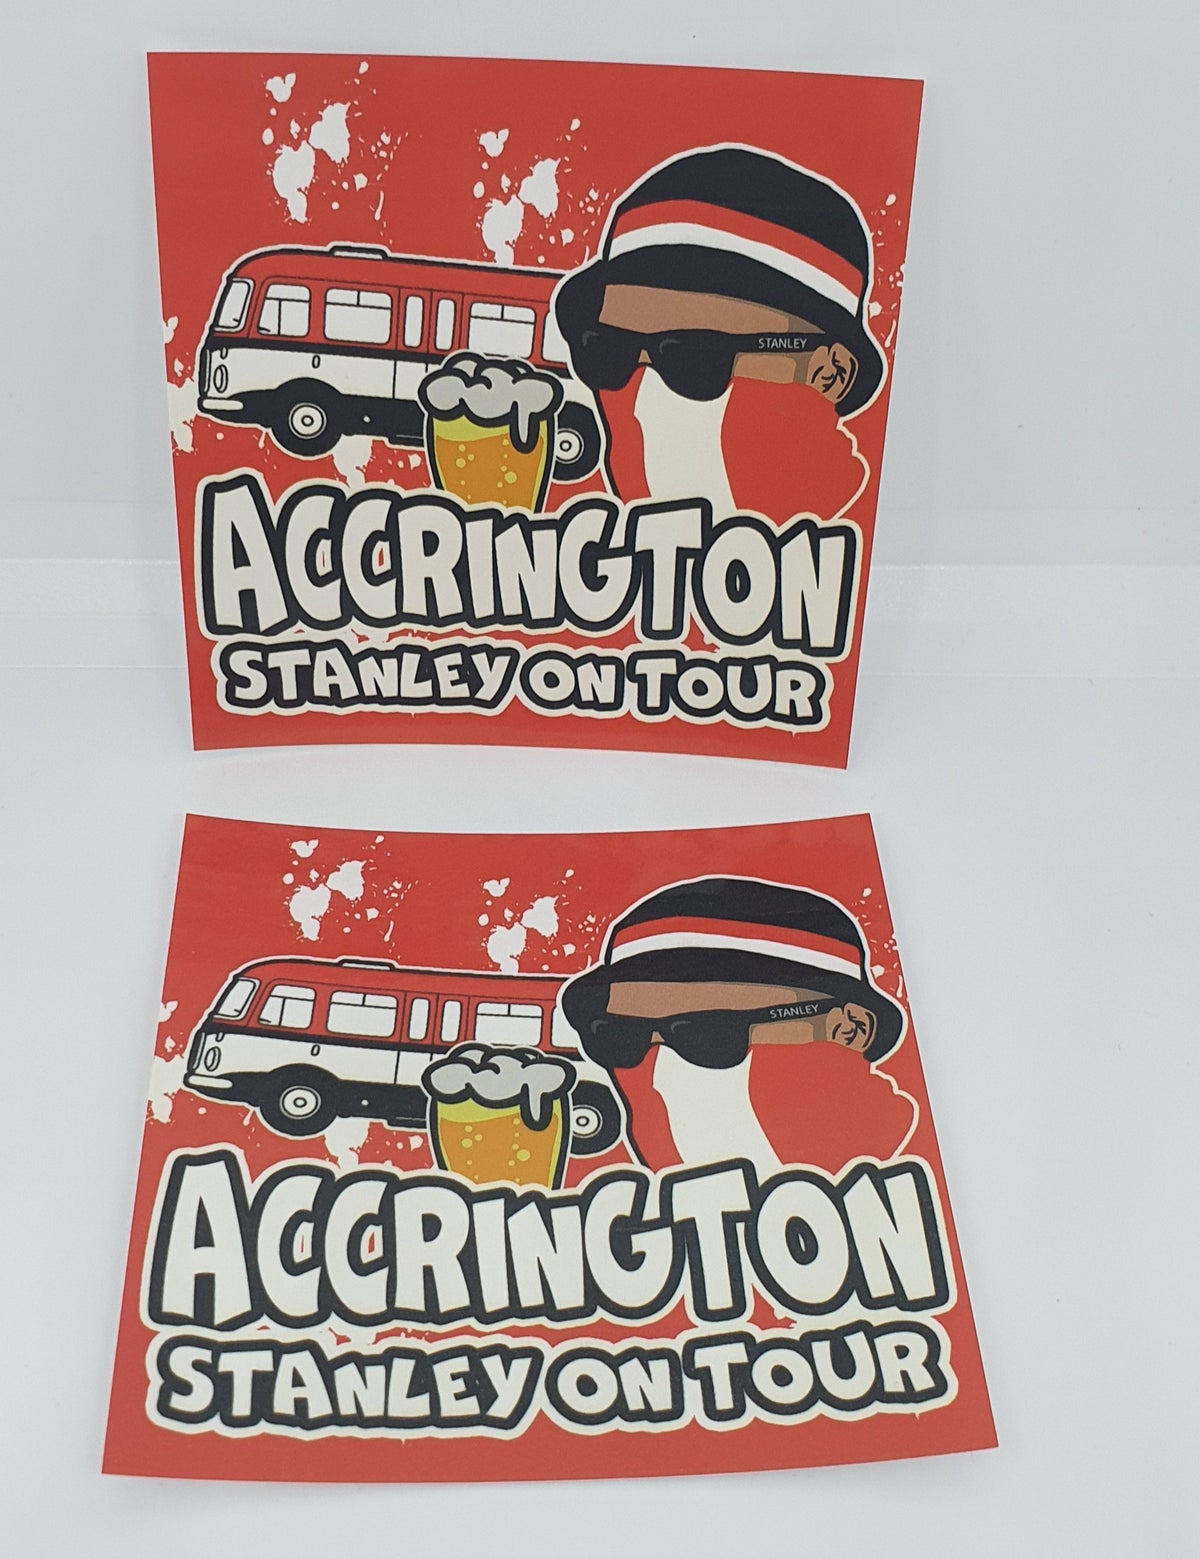 Pack of 25 7x7cm Accrington Stanley Football/ultras stickers.